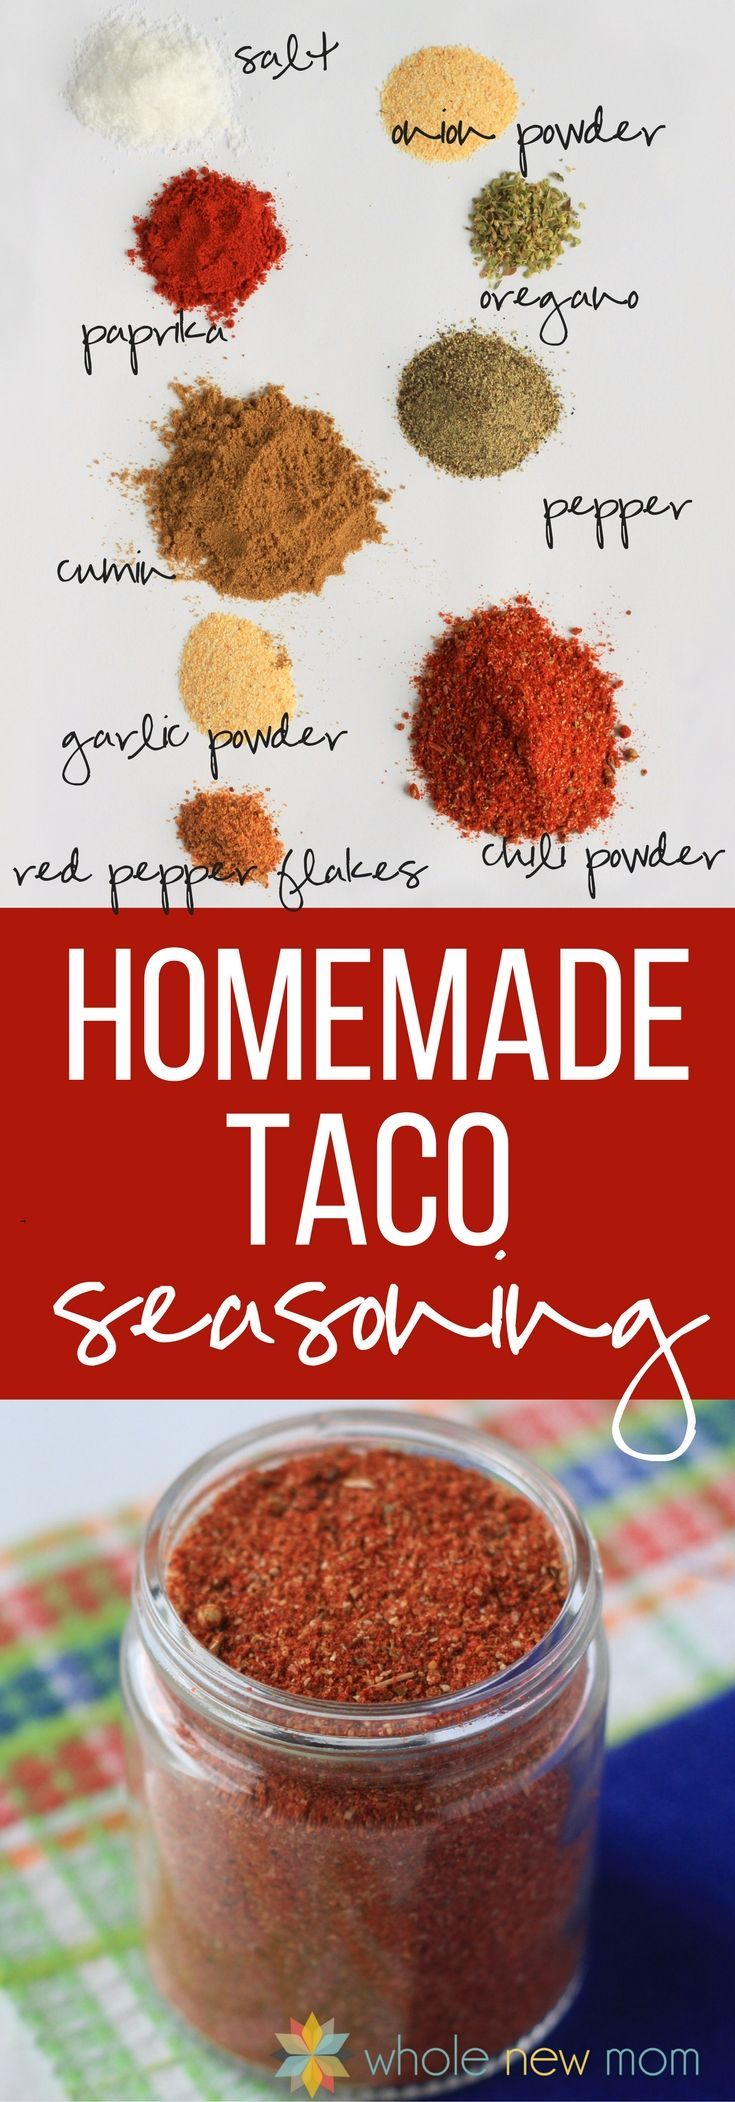 Homemade Taco Seasoning! Ditch the overpriced teensy packets with all kinds of chemical nasties--whip this up instead. Great for sides and salads too!